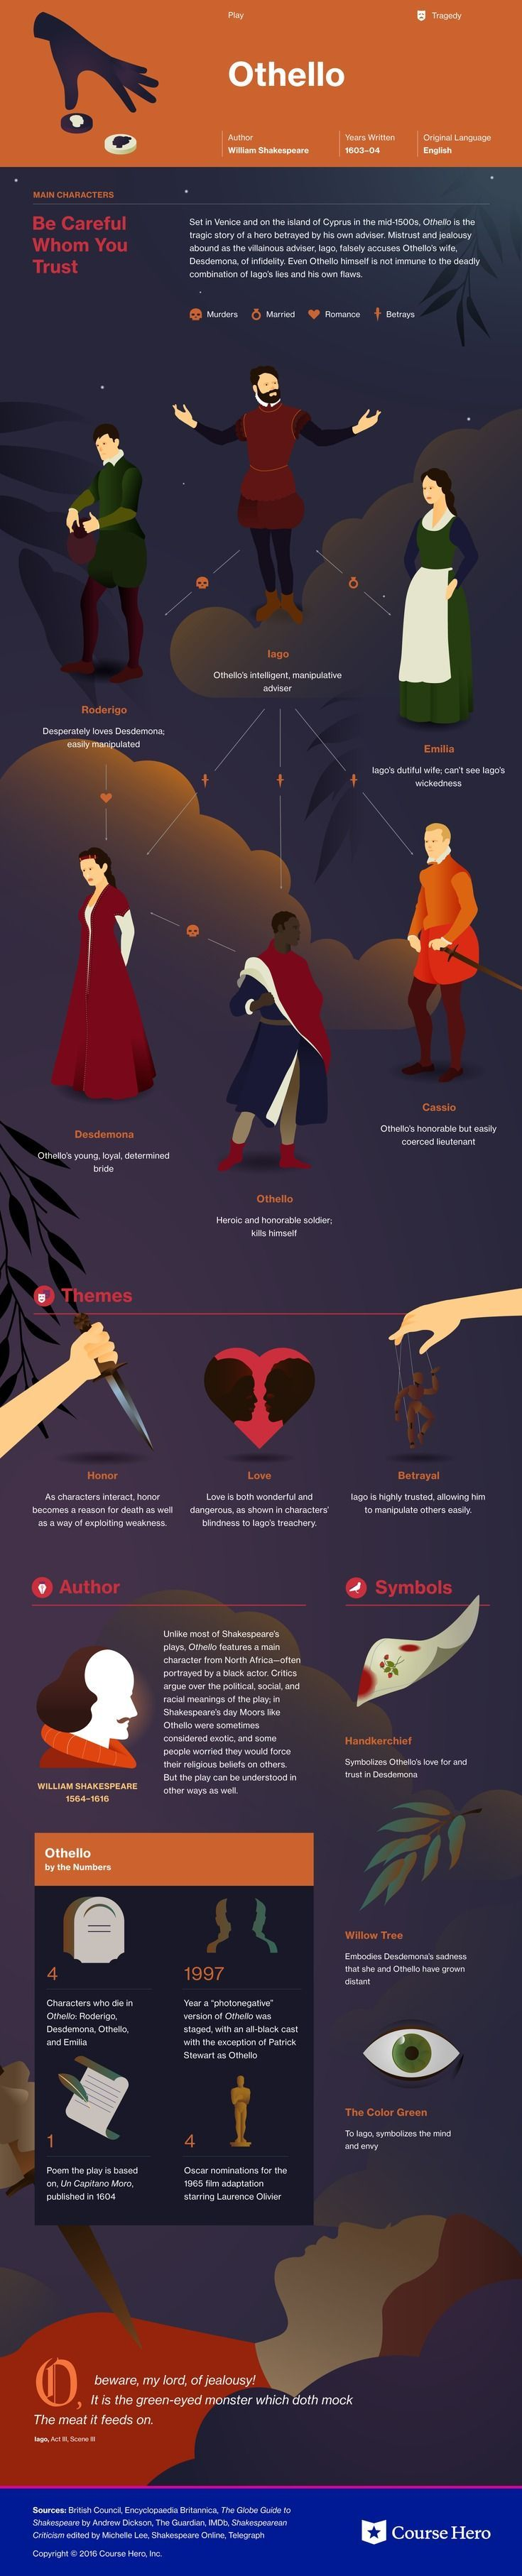 This @CourseHero infographic on Othello is both visually stunning and informative!